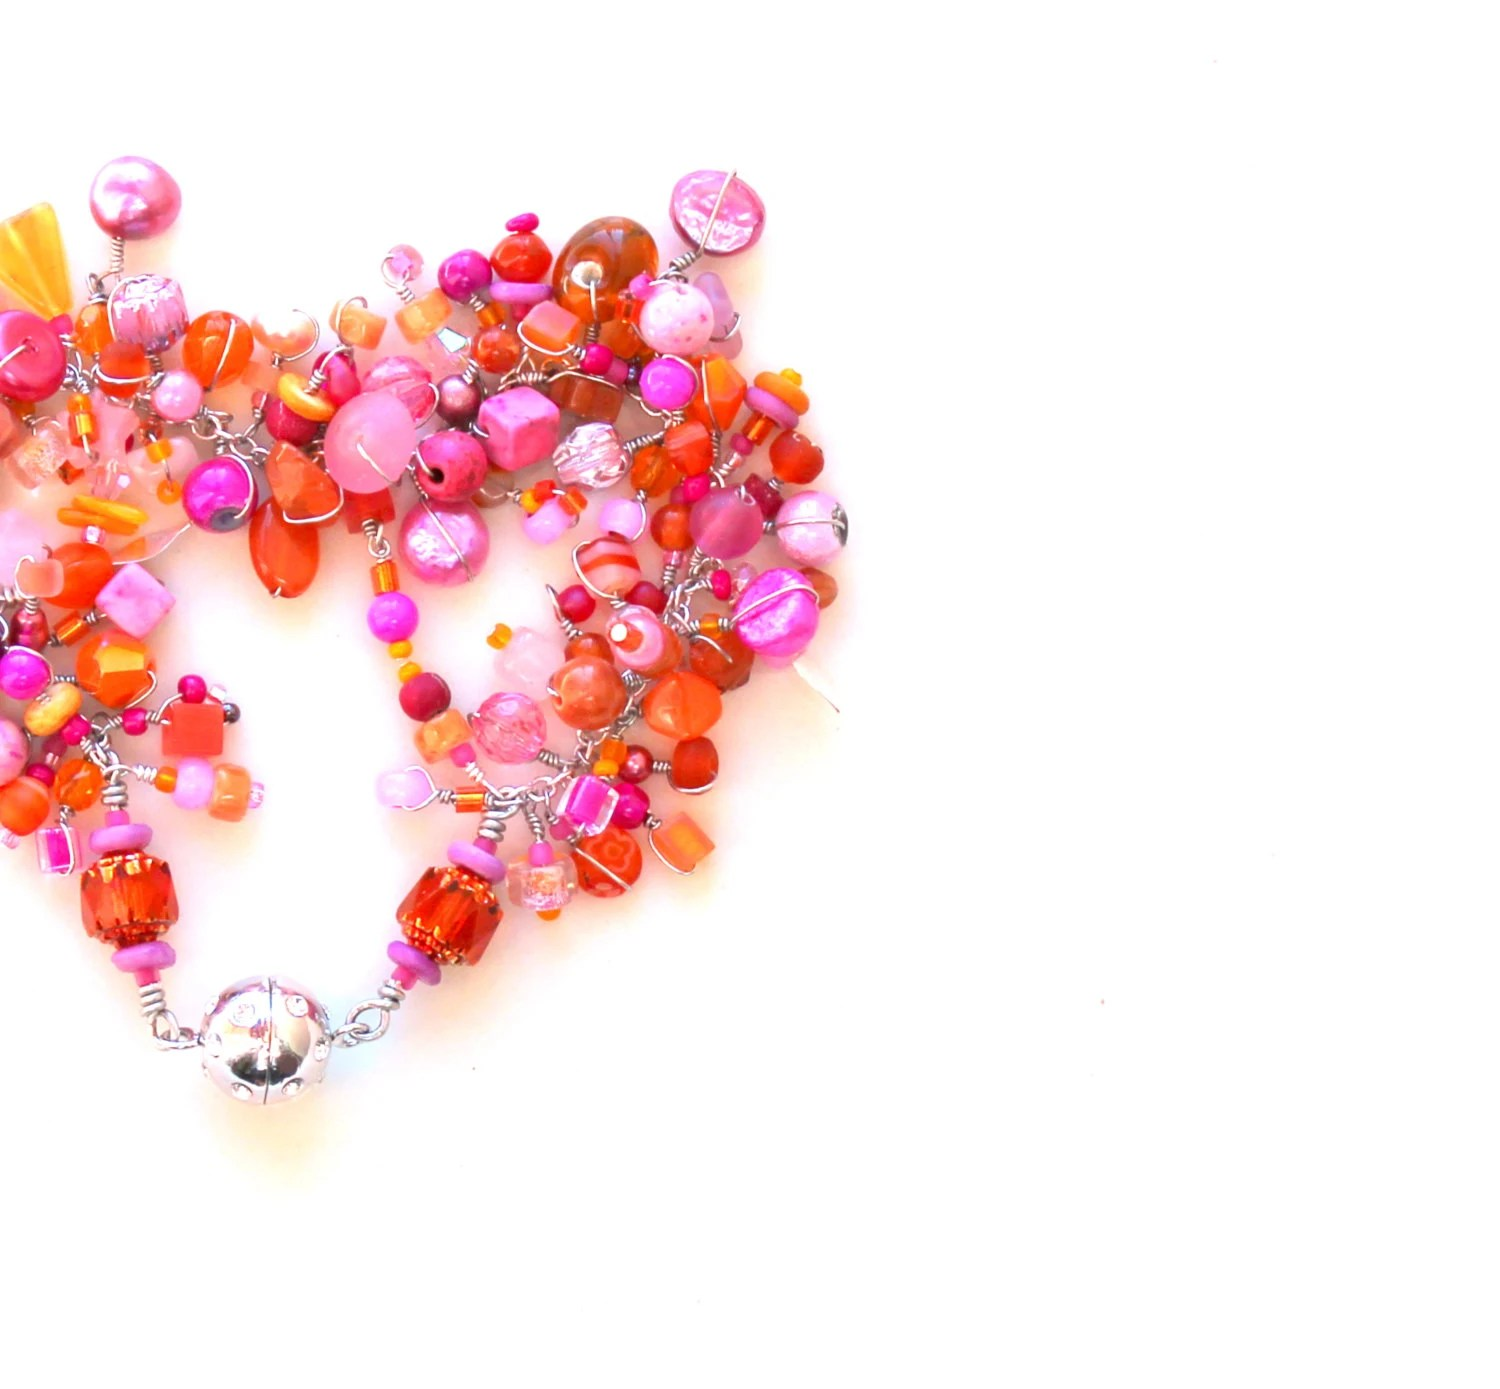 candy pink orange beaded feminine bracelet / hot pink haloween tangerine cathedral carnelian rhinestone beads wire wrapped layering gift - UniqueNecks